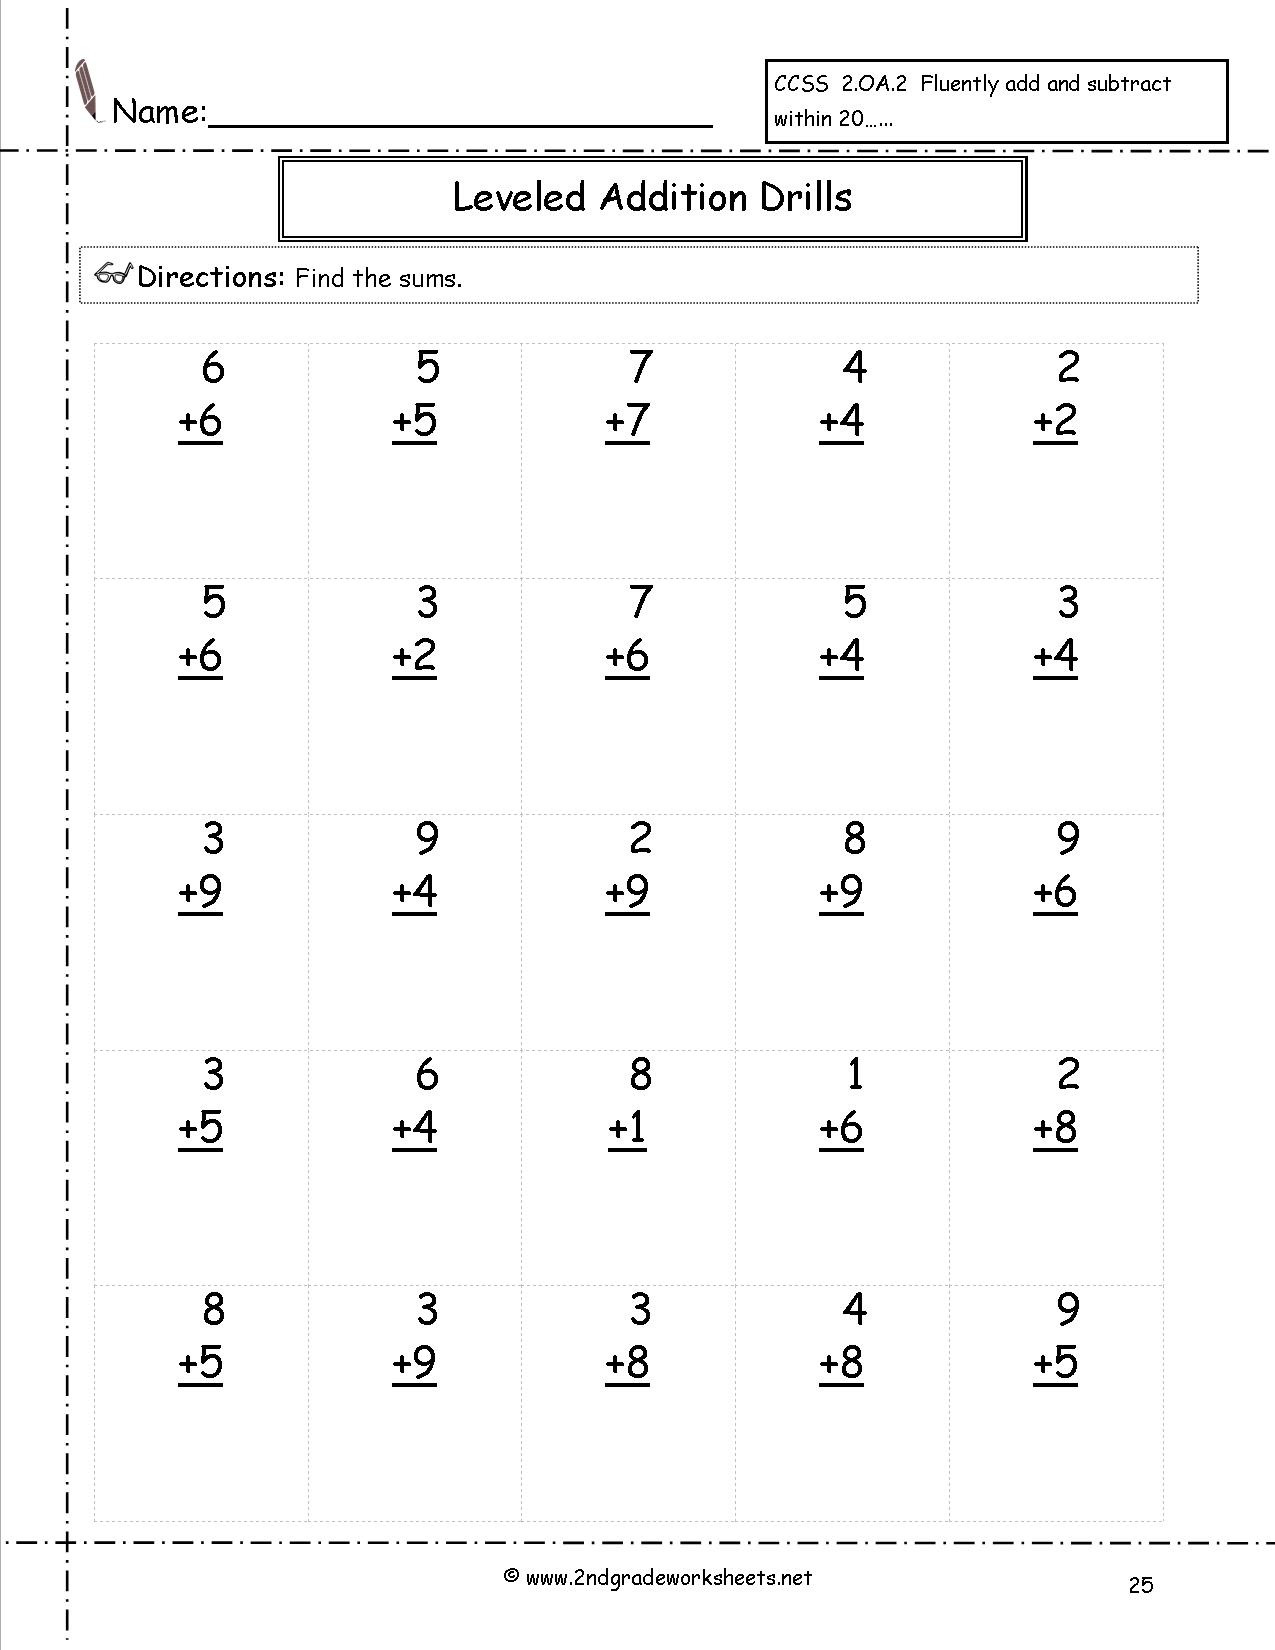 hight resolution of Equal Parts Worksheet 2nd Grade   Printable Worksheets and Activities for  Teachers